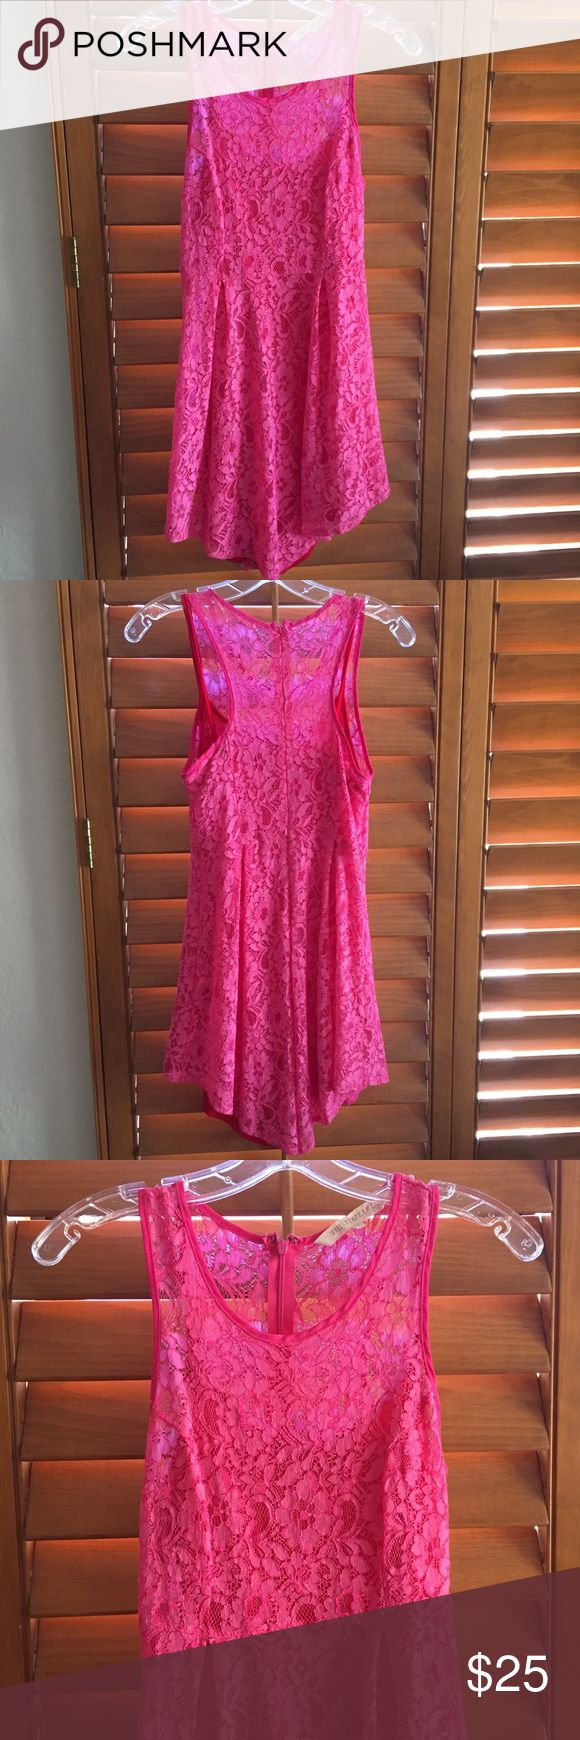 Pink thistlepearl lace racerback dress